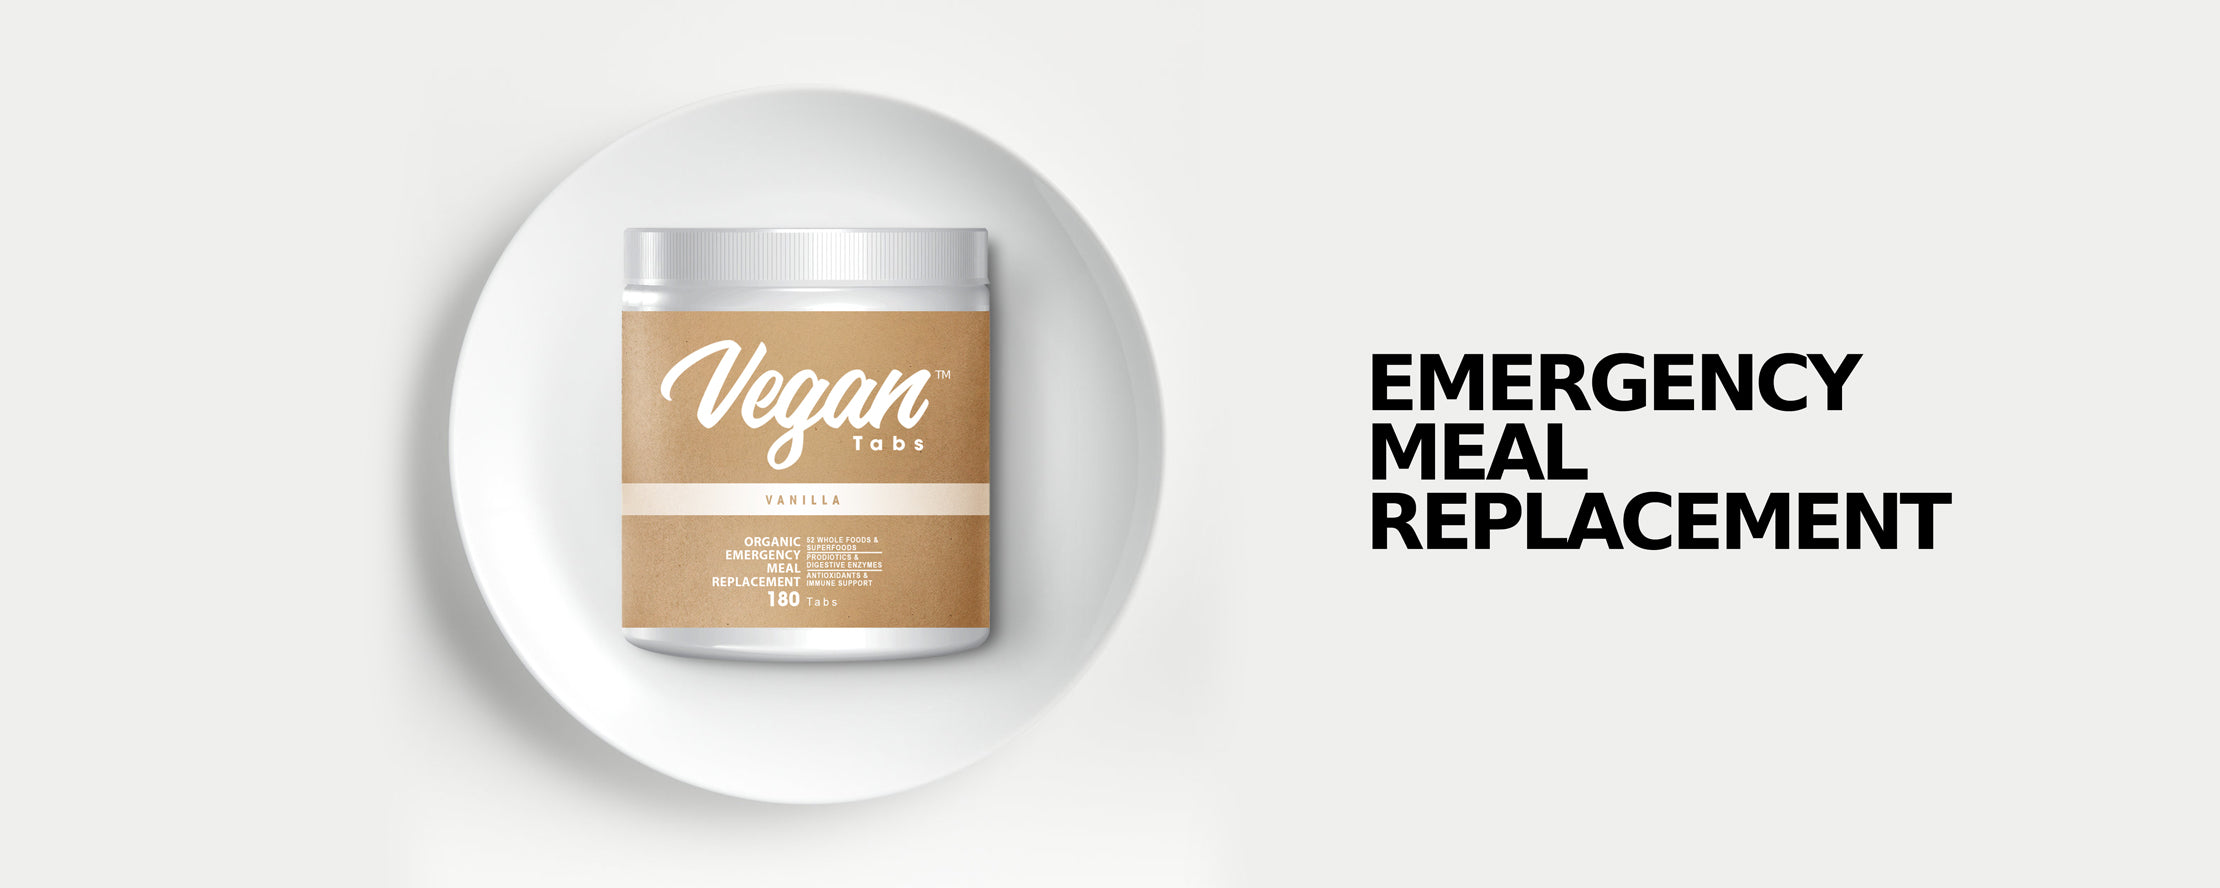 Vegantabs - the survival / emergency meal replacement